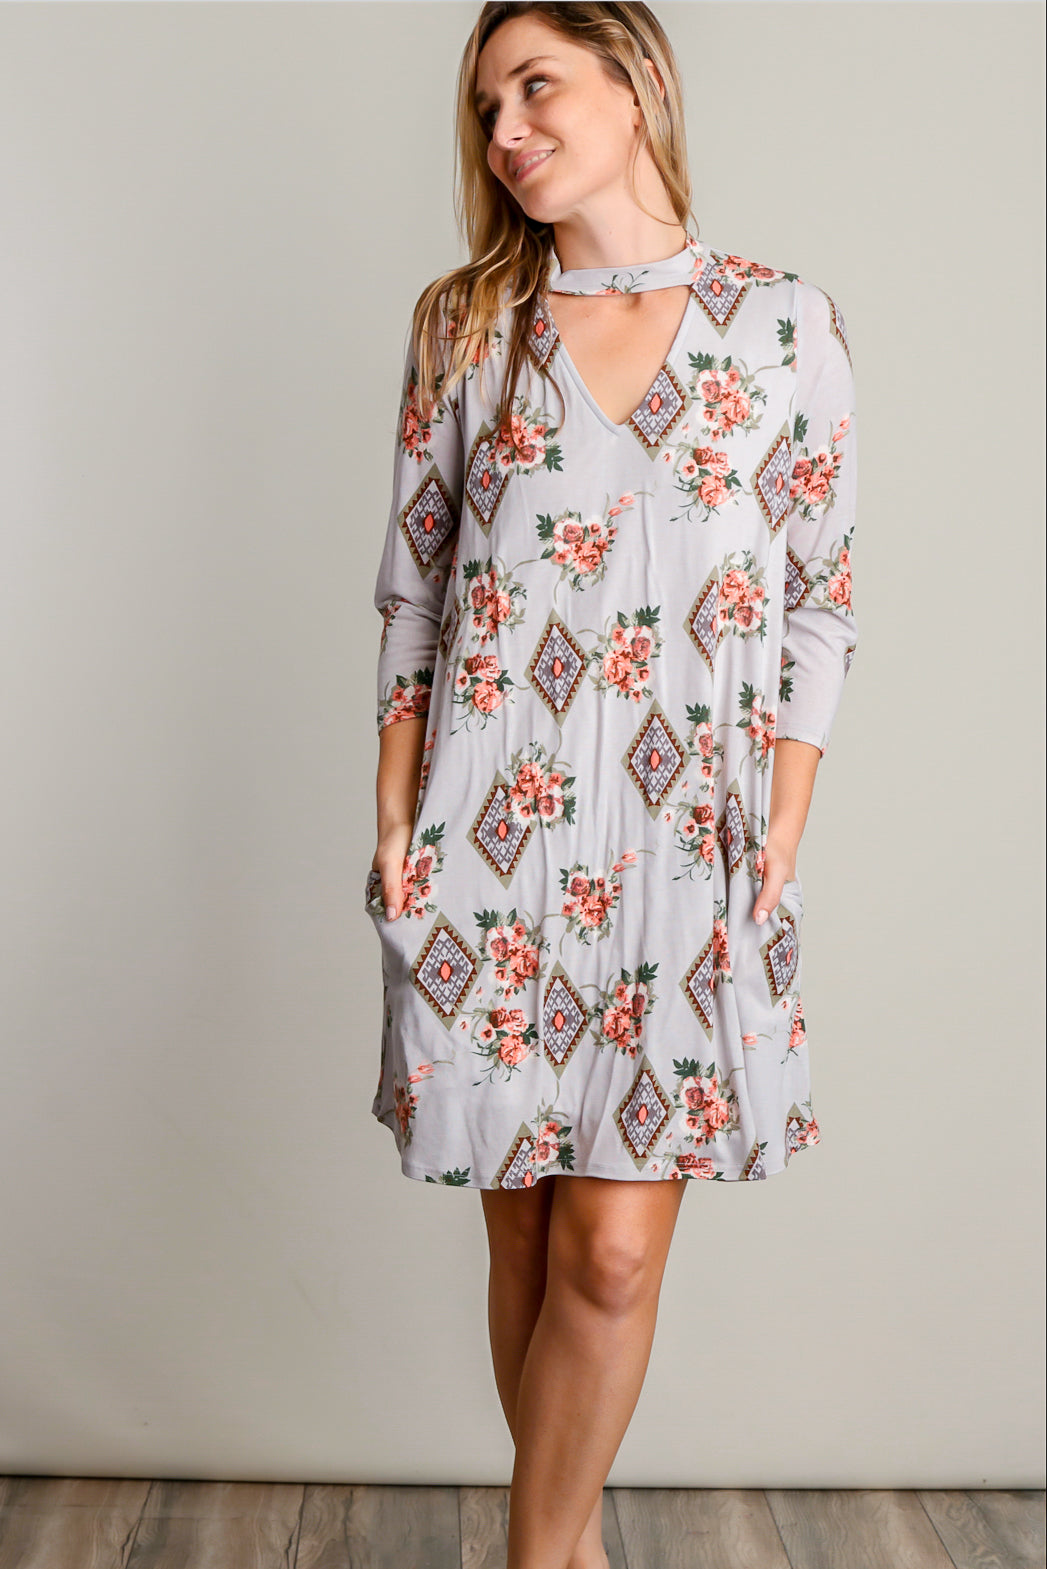 Stone Floral Inner Lined Tribal Printed Choker Dress